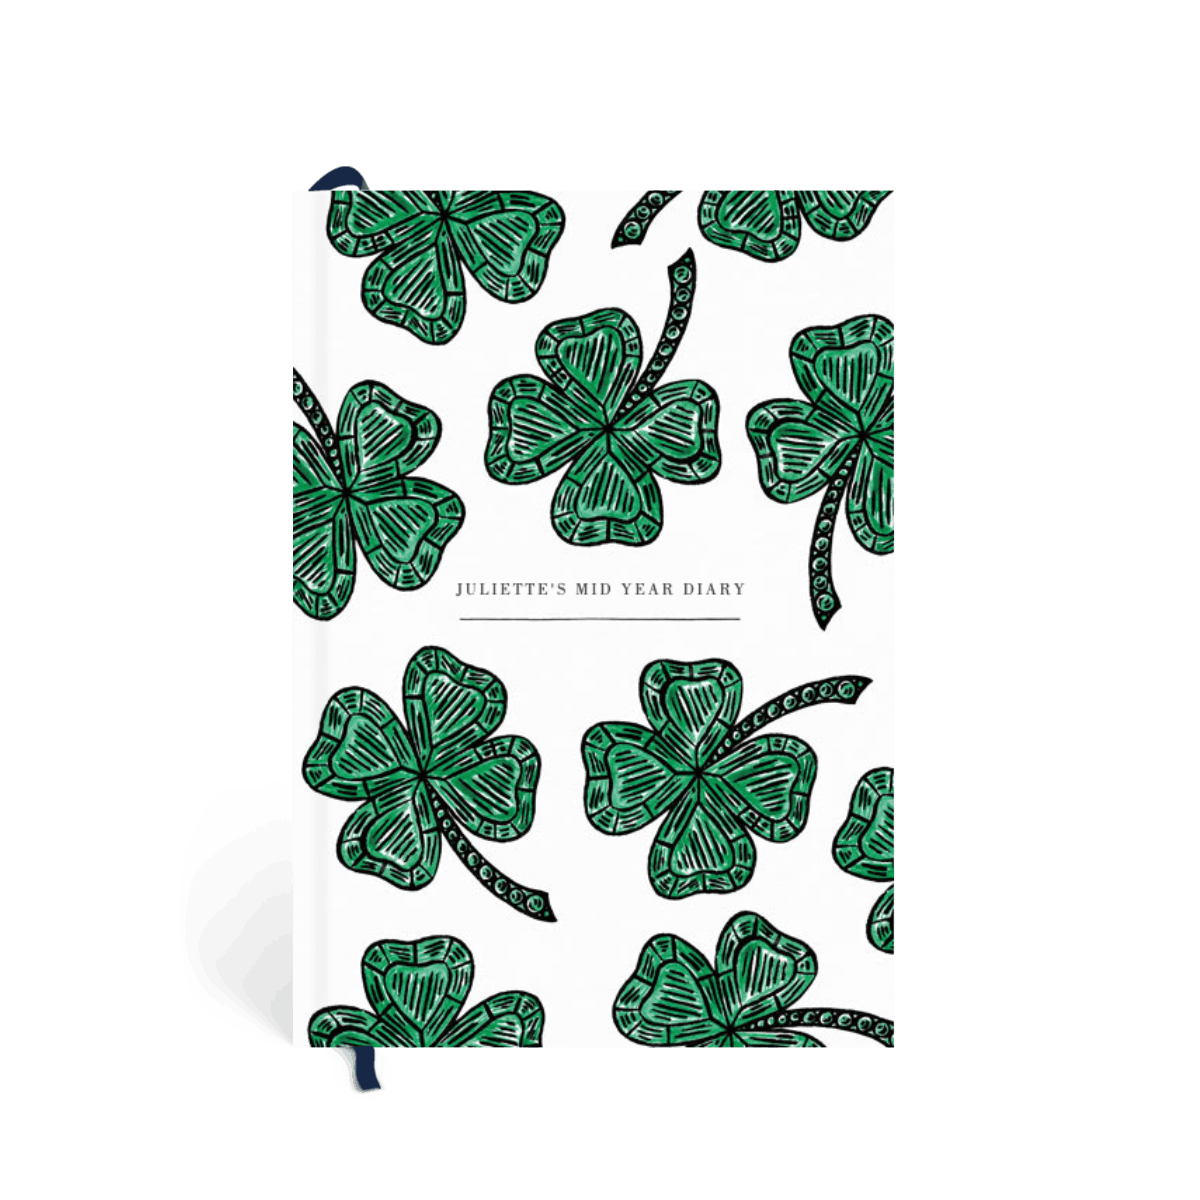 Https%3a%2f%2fwww.papier.com%2fproduct image%2f84537%2f36%2fshamrock 20548 front 1563462871.png?ixlib=rb 1.1